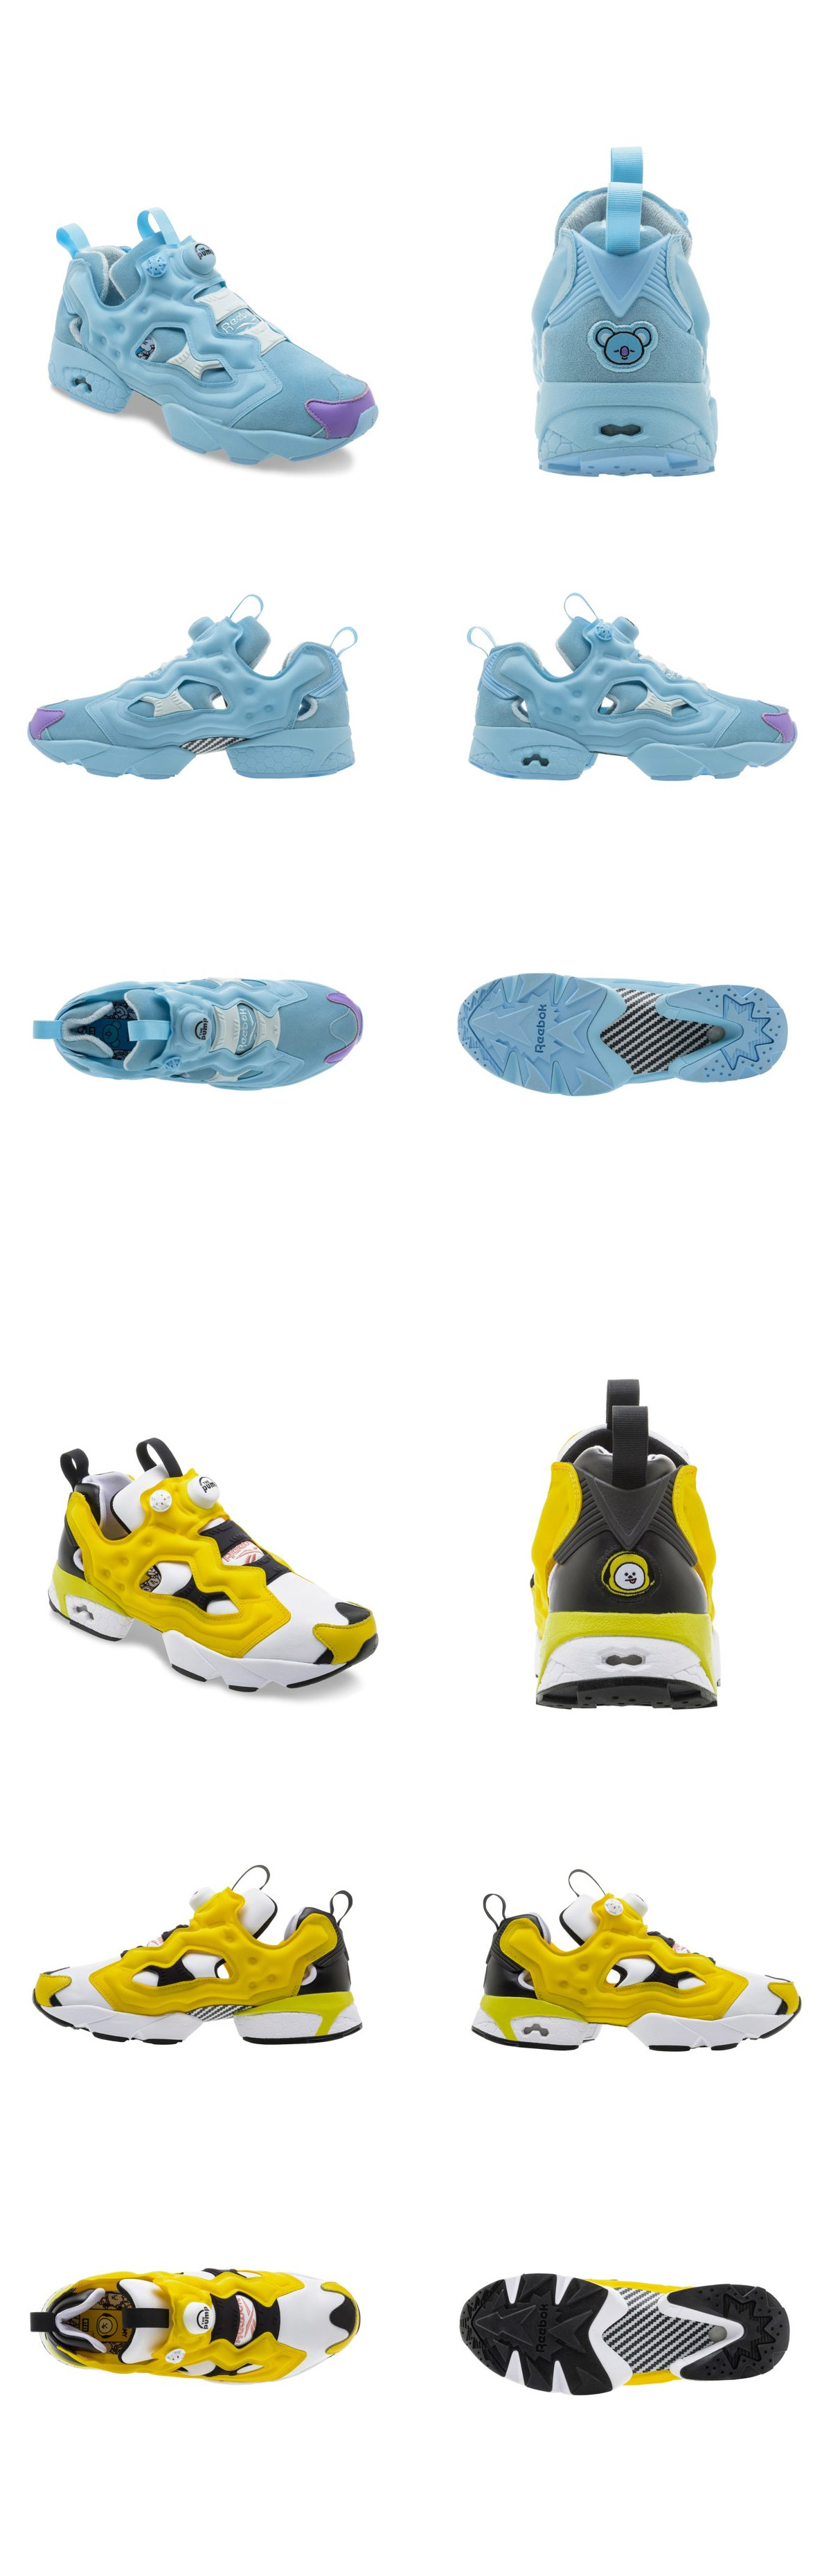 225d4dd08c43c  BT21  Reebok Collaboration - INSTAPUMP FURY OG MU. Product Information. -  Material   Polyester. Detail View